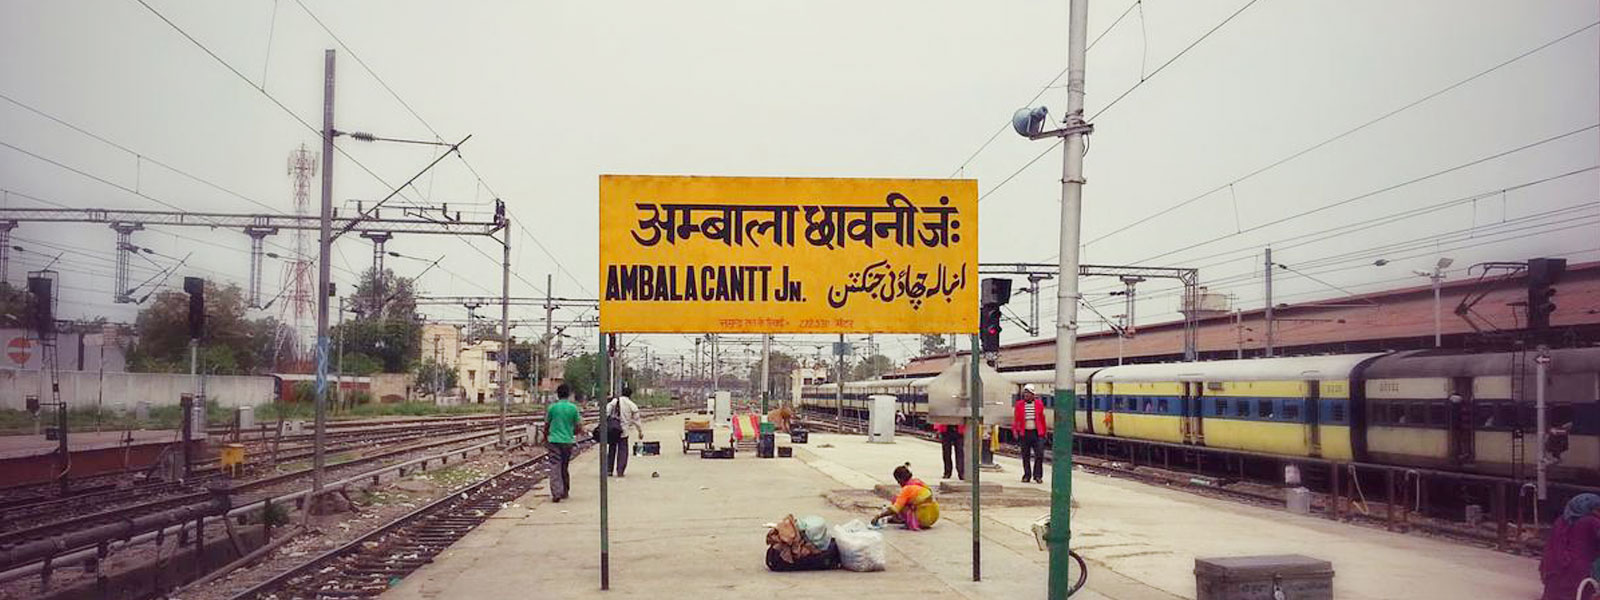 Municipal Corporation, Ambala::